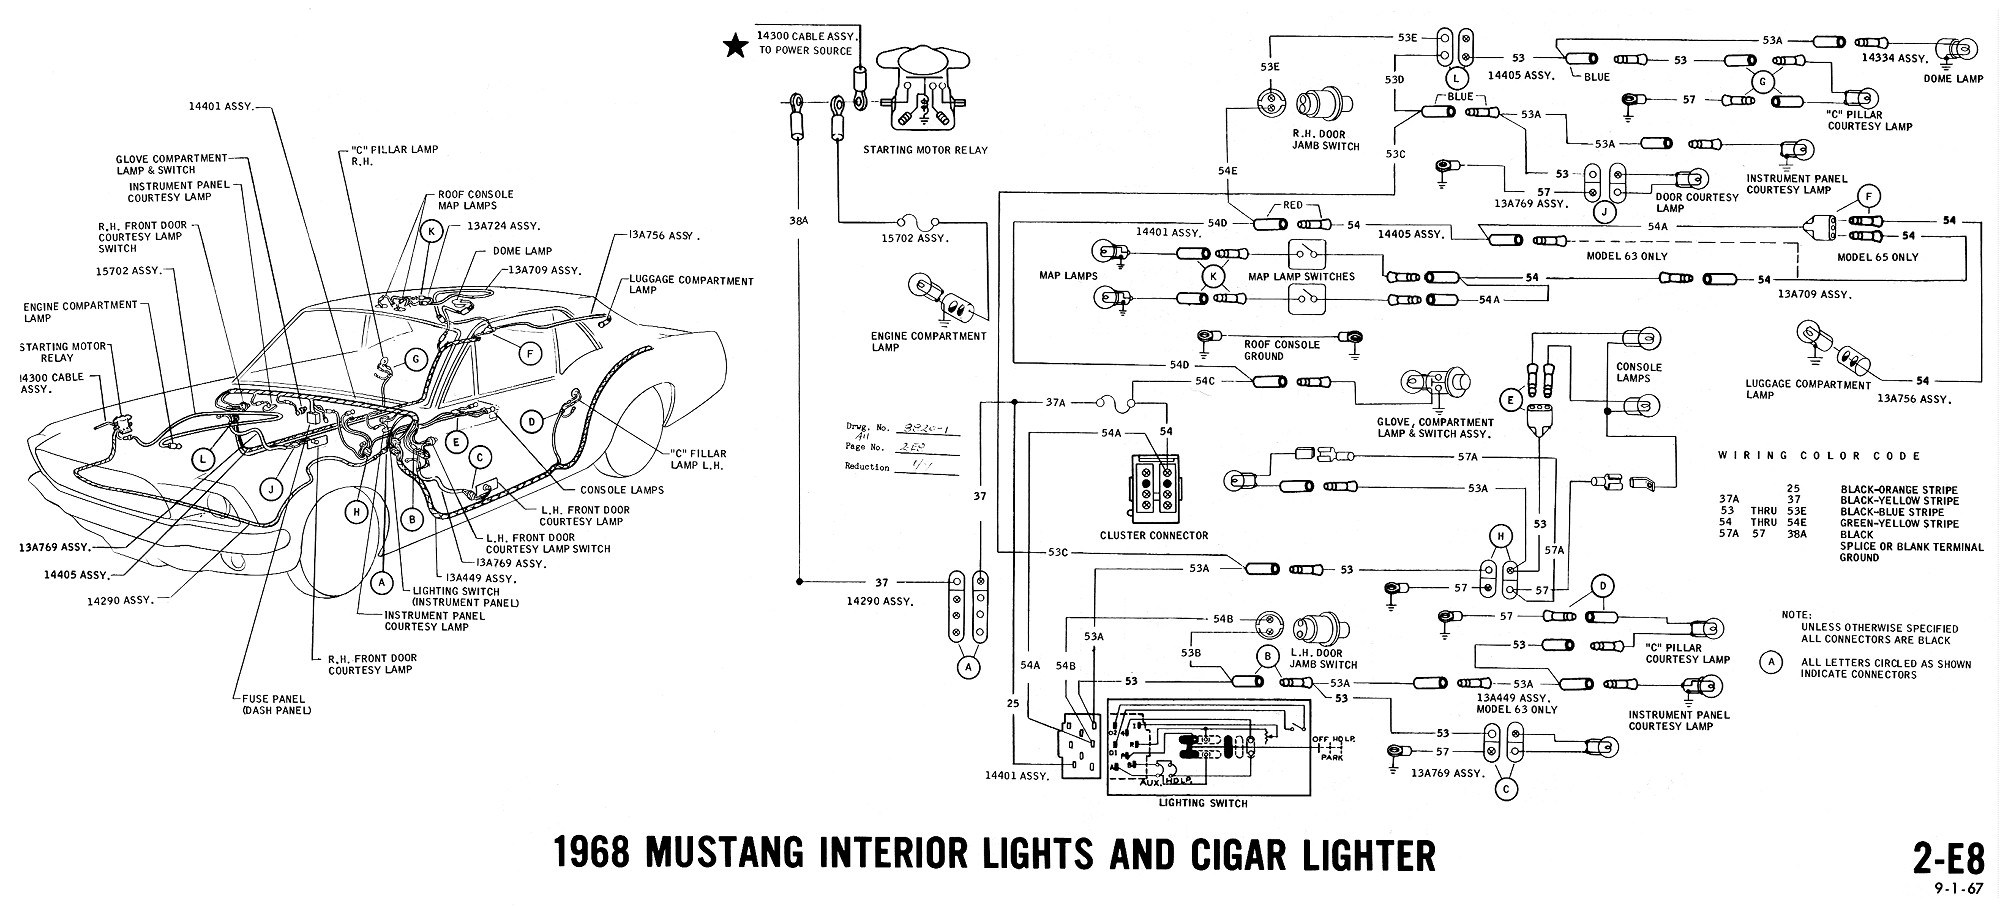 Brilliant Wrg 5461 1968 Ford Mustang Fuse Box Diagram Wiring Cloud Picalendutblikvittorg